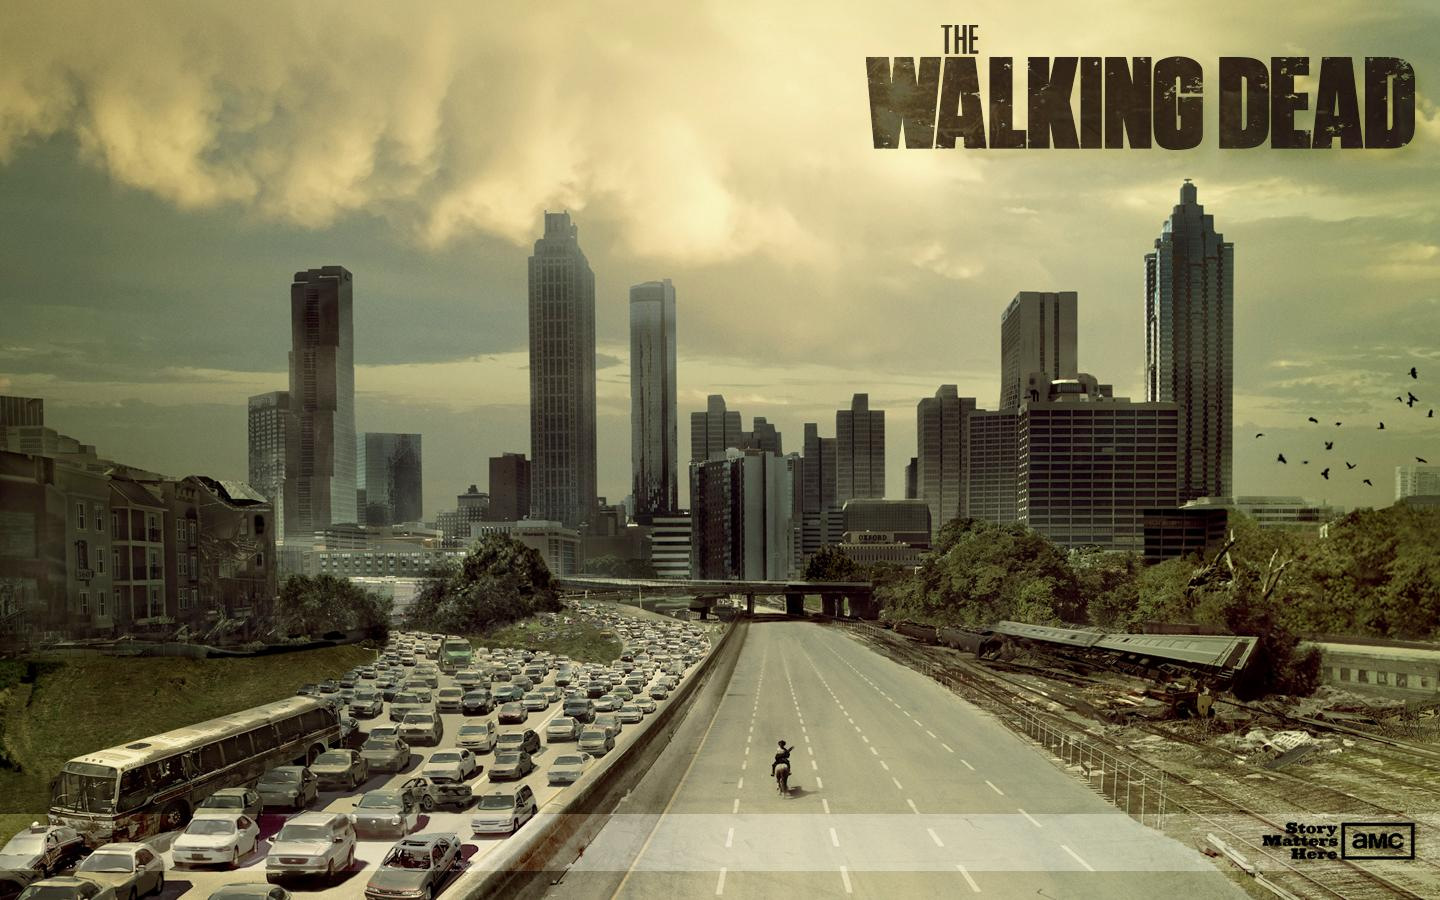 Walking Dead Season 4 7р анги